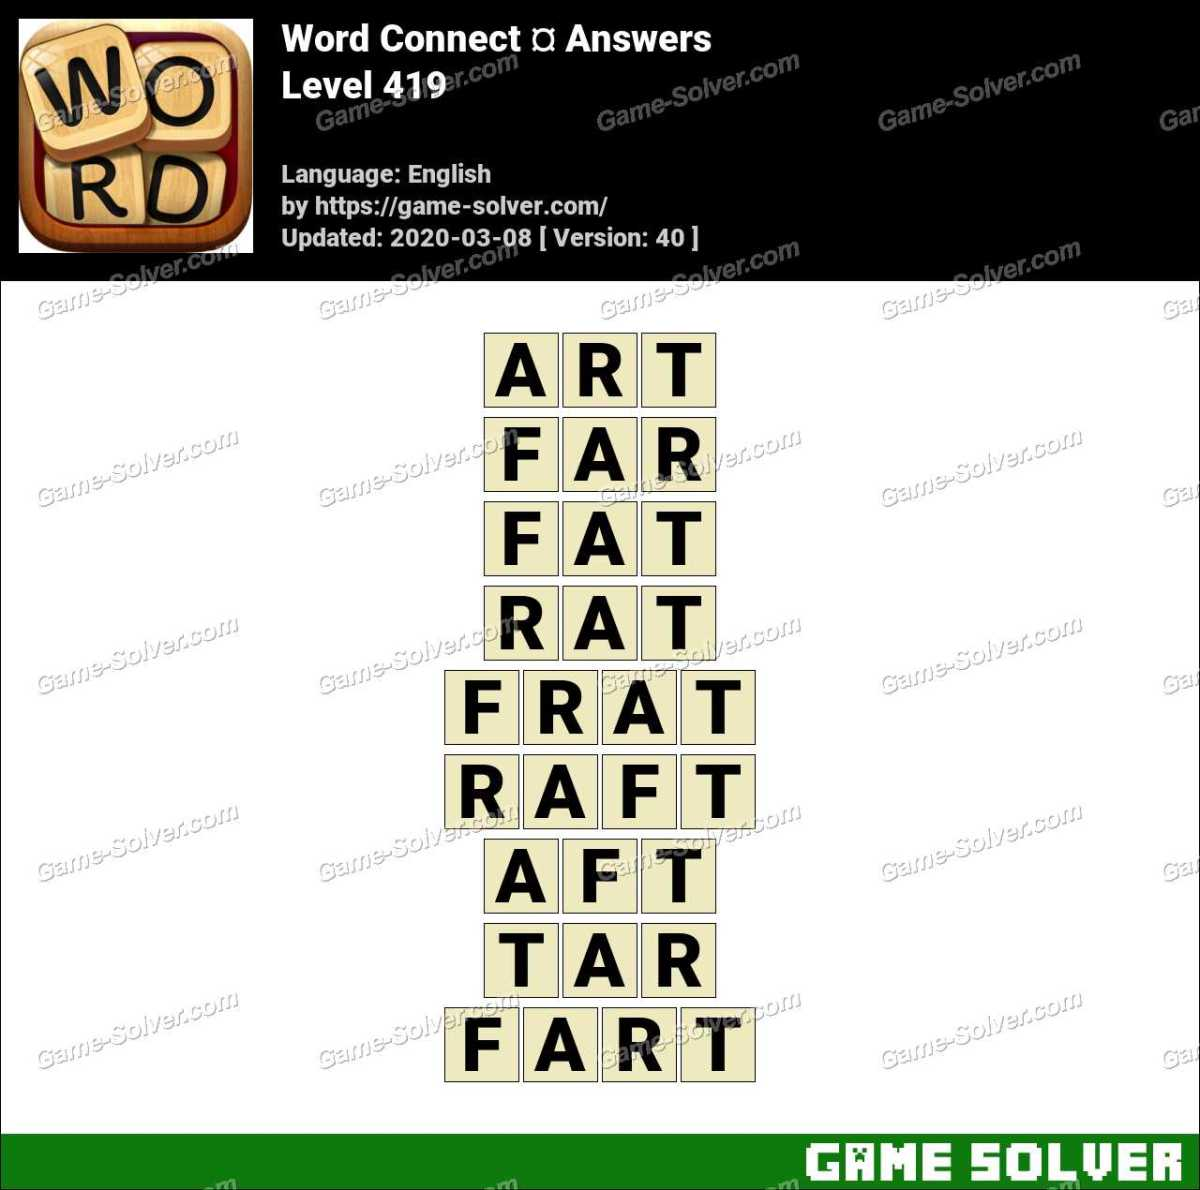 Word Connect Level 419 Answers